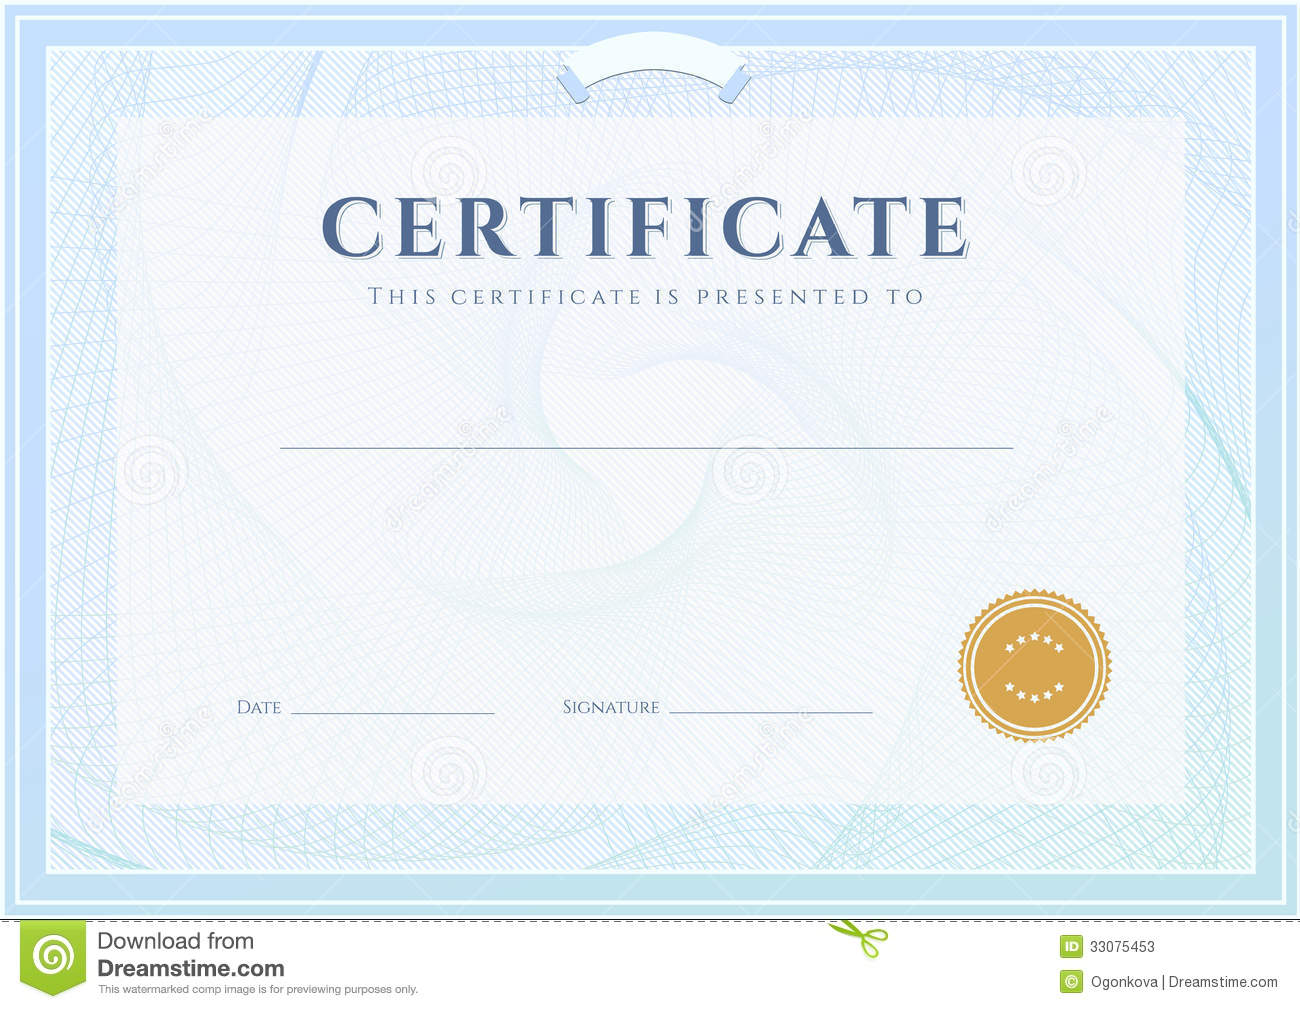 Printable Certificate Of Authenticity Zrom